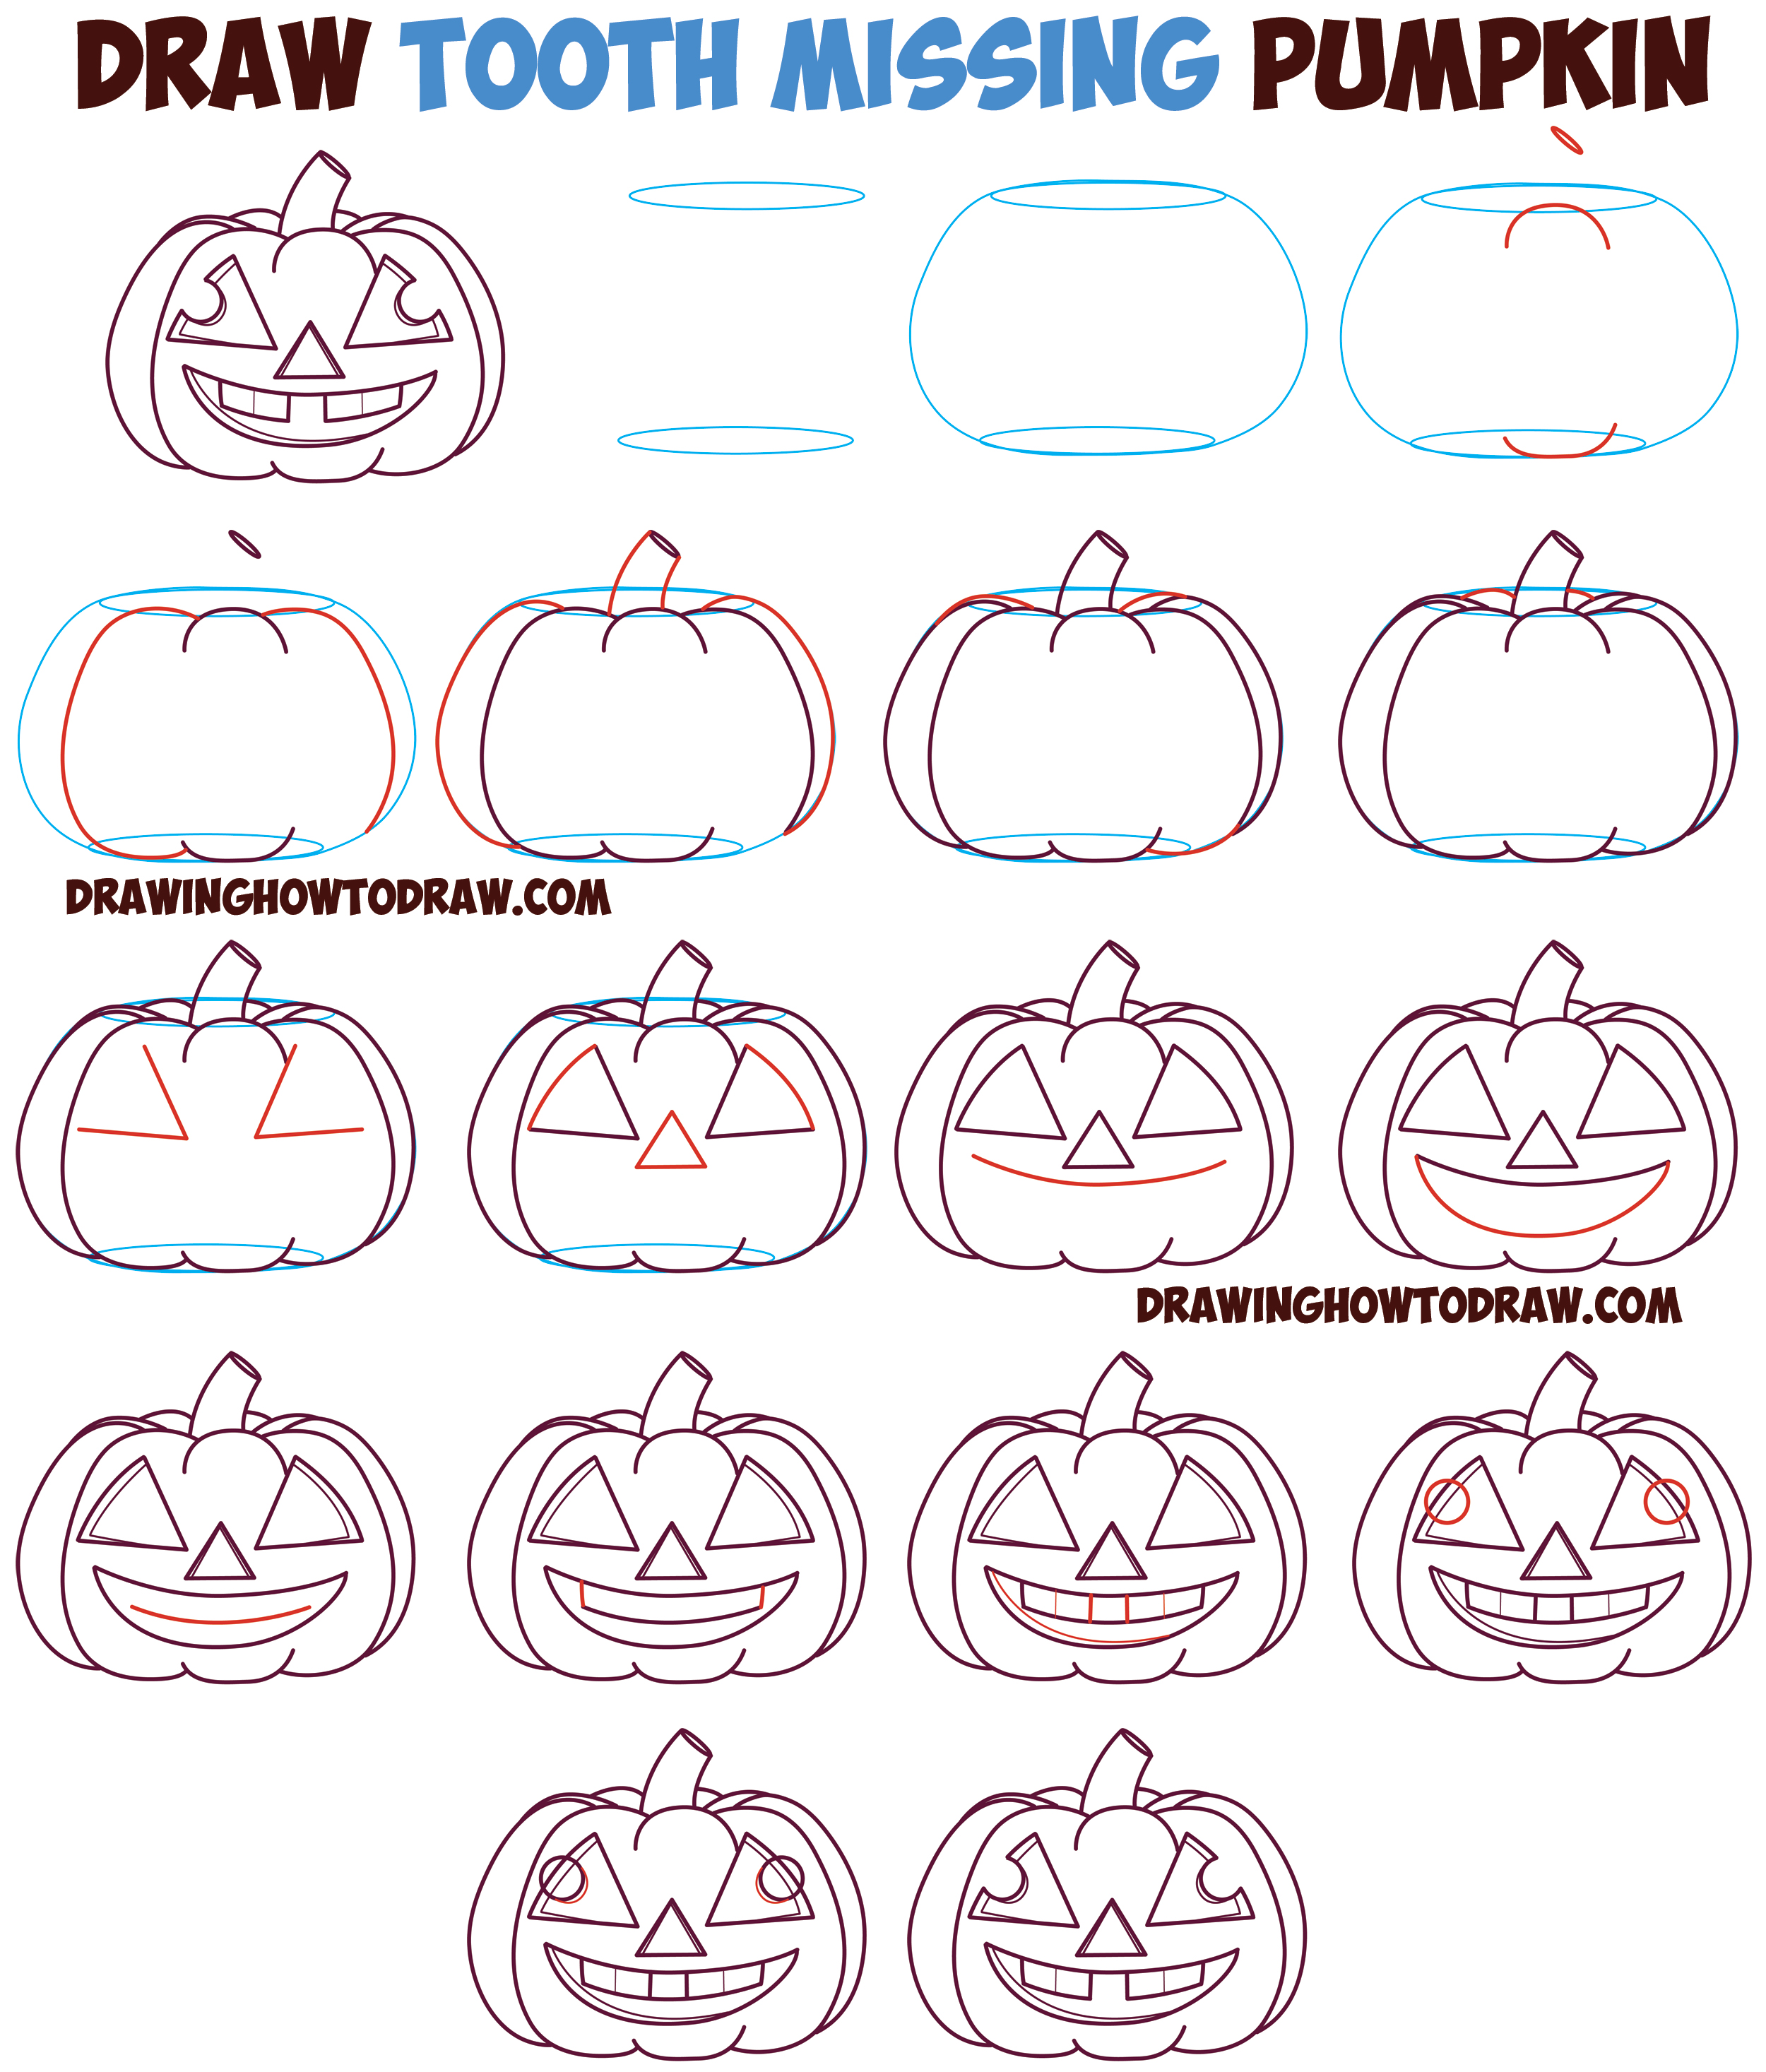 How to Draw Cartoon Pumpkin / Jack O'Lantern : Happy, Smiling with Tooth Missing and Crazy Eyes